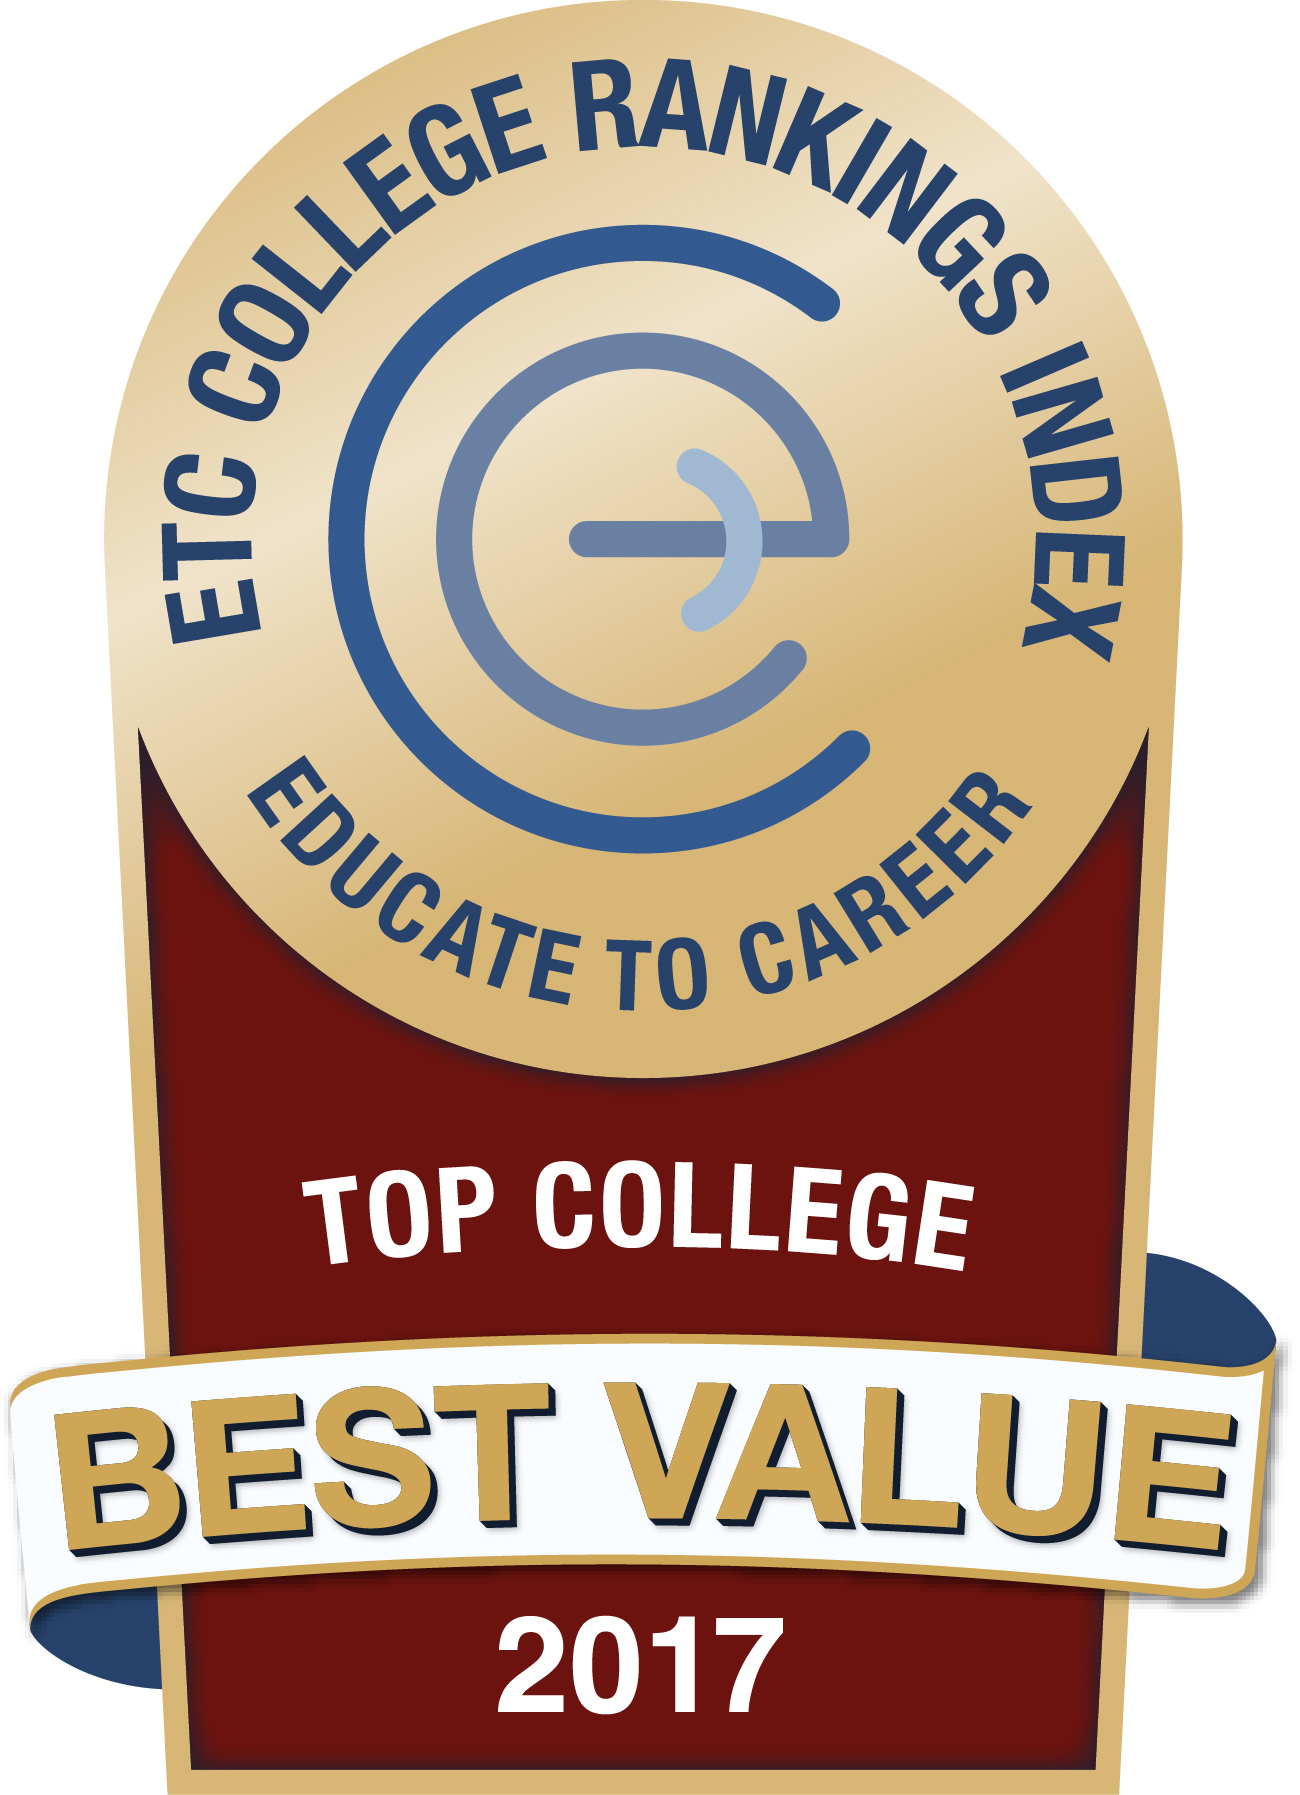 Best Value Top College 2017 - ETC Rankings